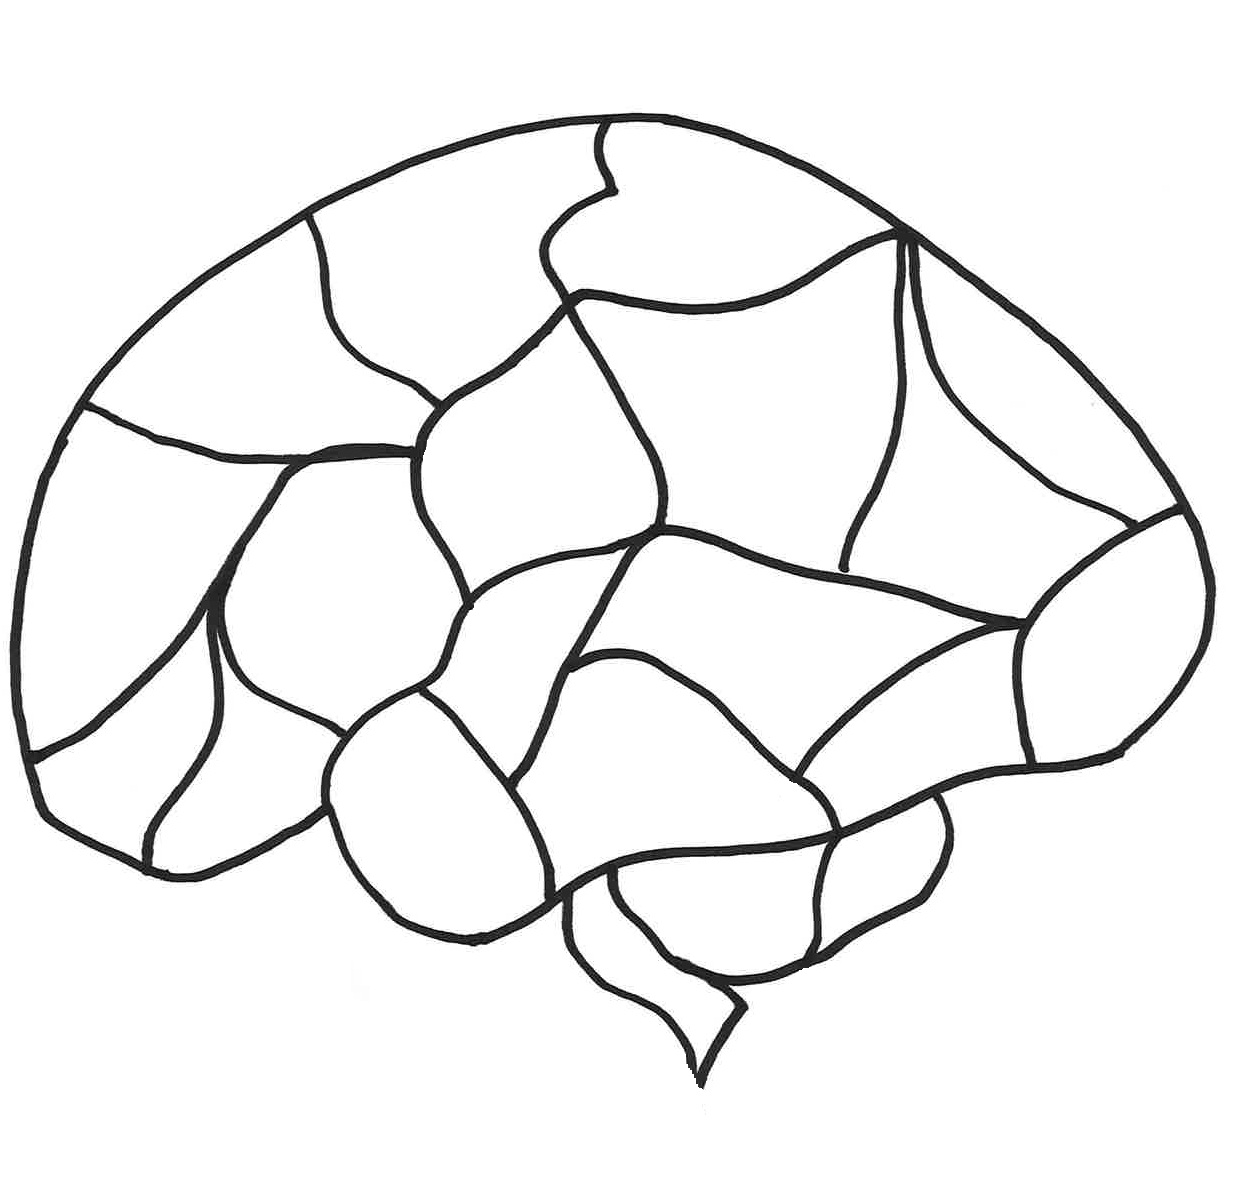 Brain Blank Diagram - ClipArt Best